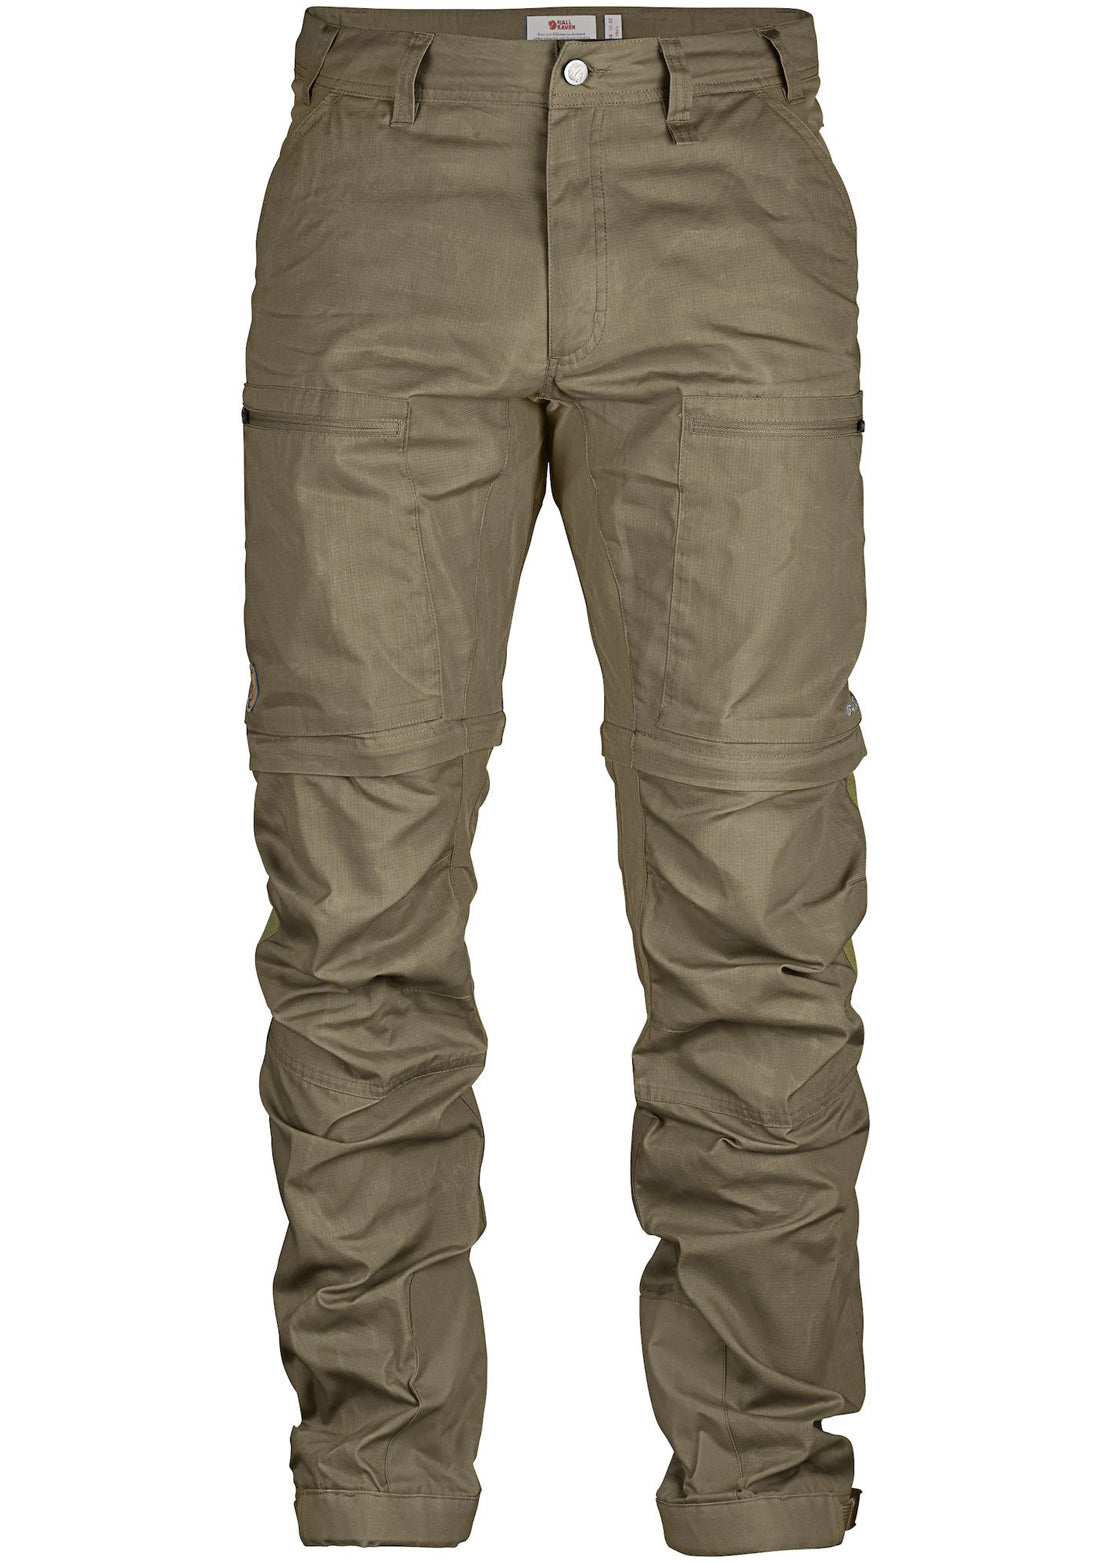 Fjallraven Men's Abisko Lite Trekking Zip-Off Reg Pants Light Olive